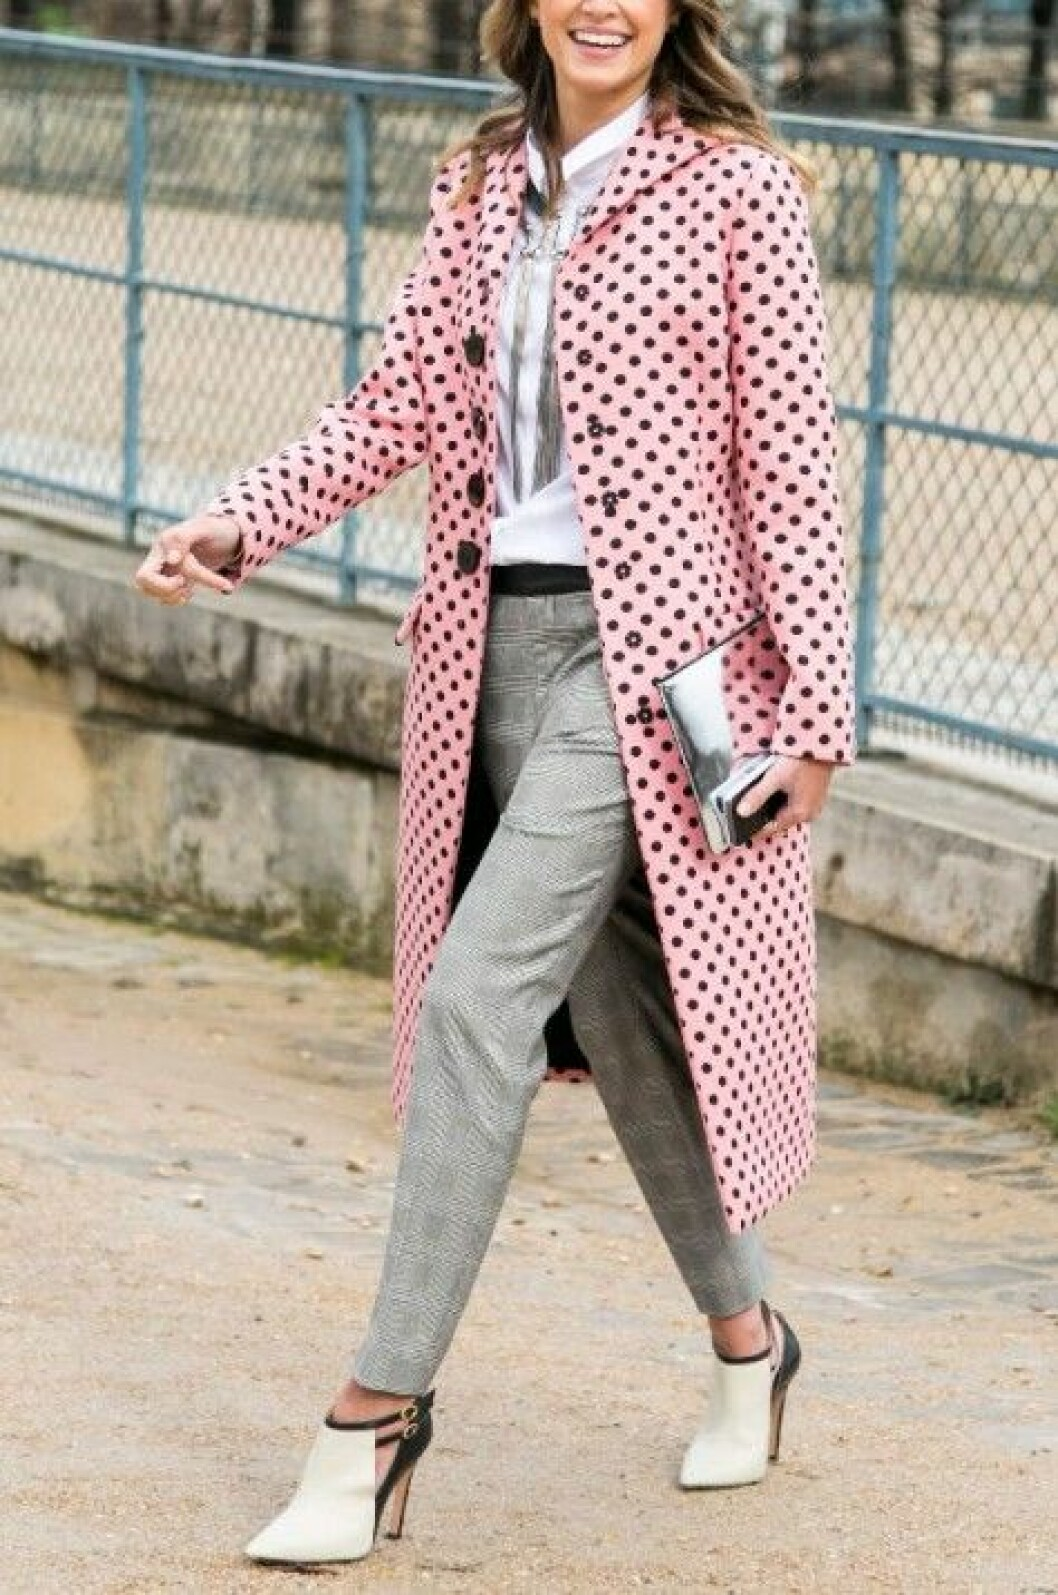 Dotted coat on a woman. Street fashion photo